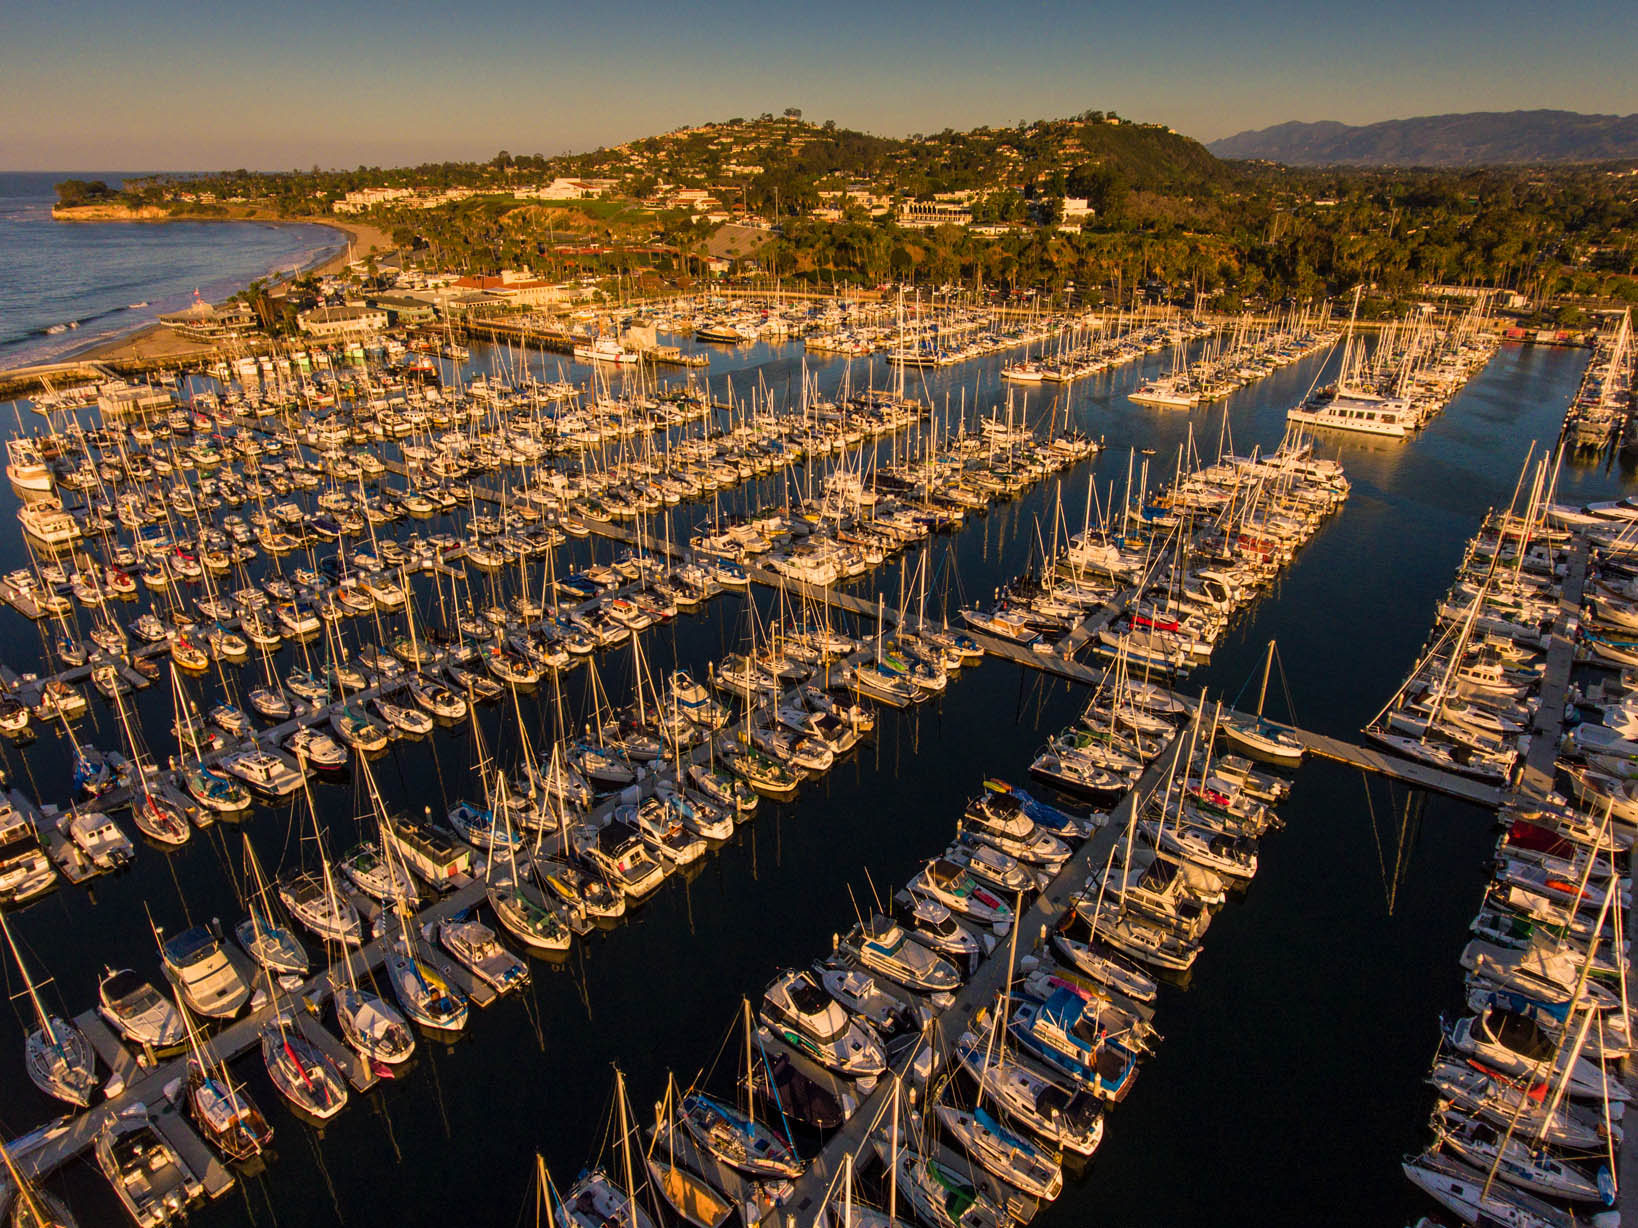 Aerial_Santa_Barbara_Harbor2